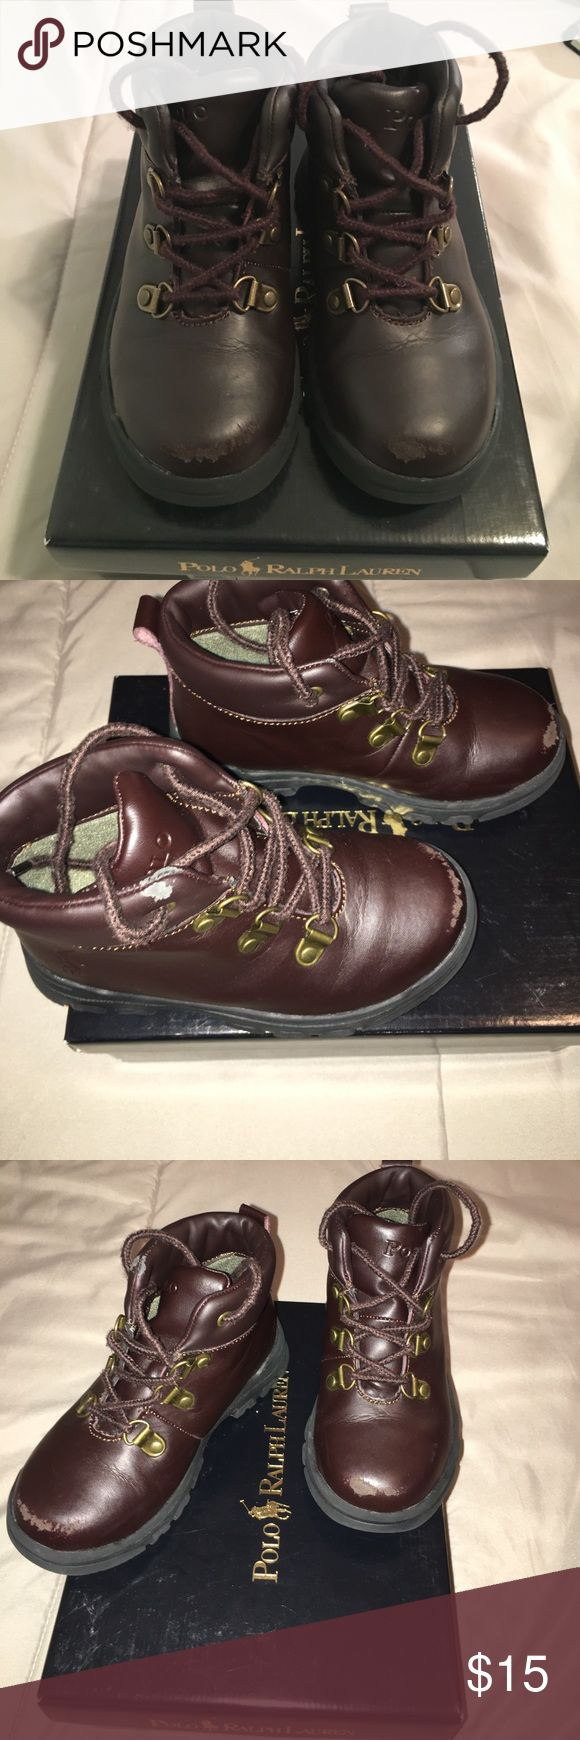 Polo boots 8.5c GUC, has some flaws (scuffing and peeling) as seen in pictures.  Comes with original box Polo by Ralph Lauren Shoes Boots